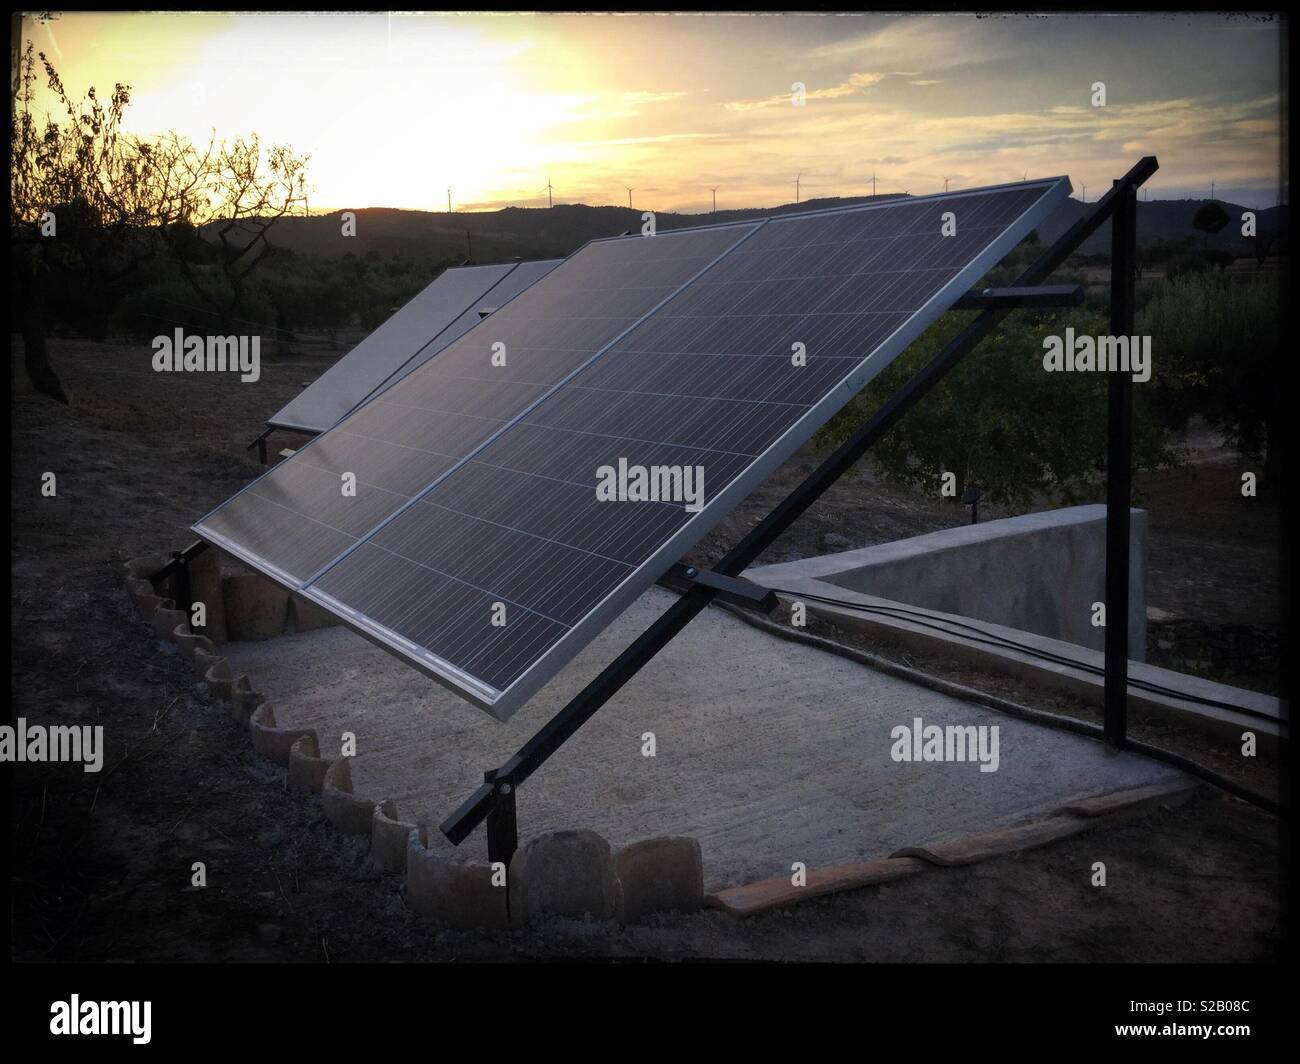 Living off-grid with solar energy, Catalonia, Spain. - Stock Image